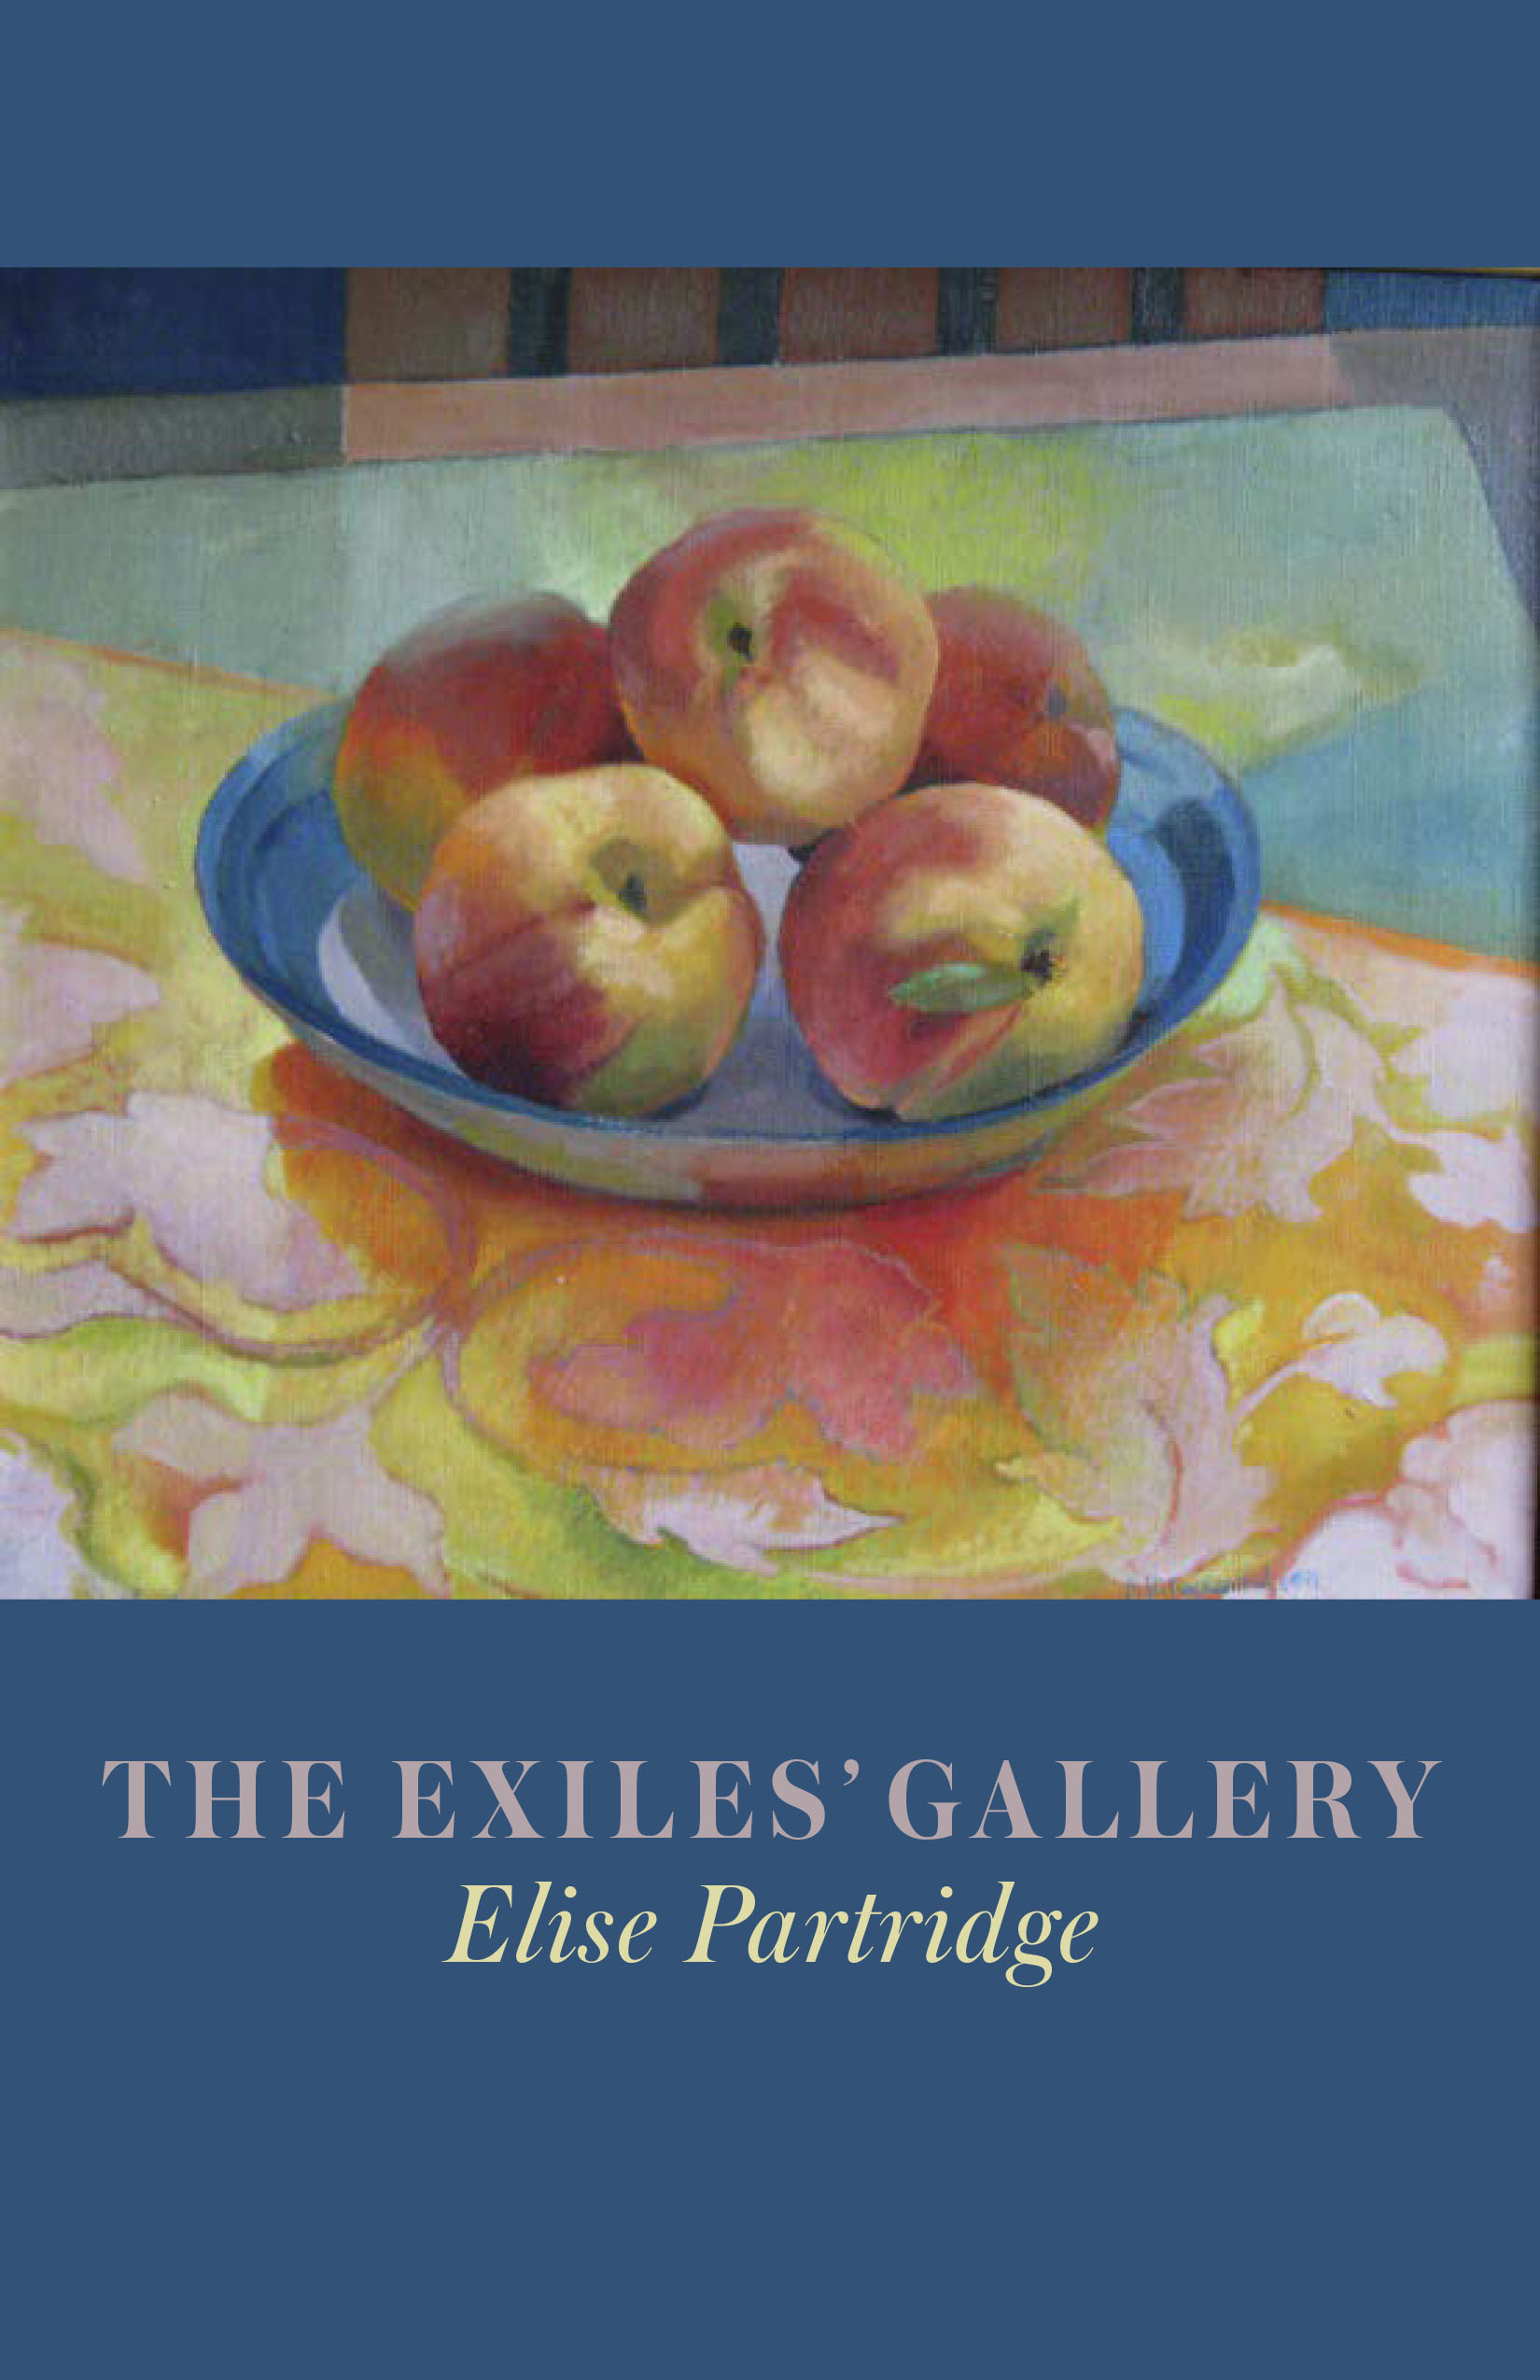 The Exiles' Gallery by Elise Partridge